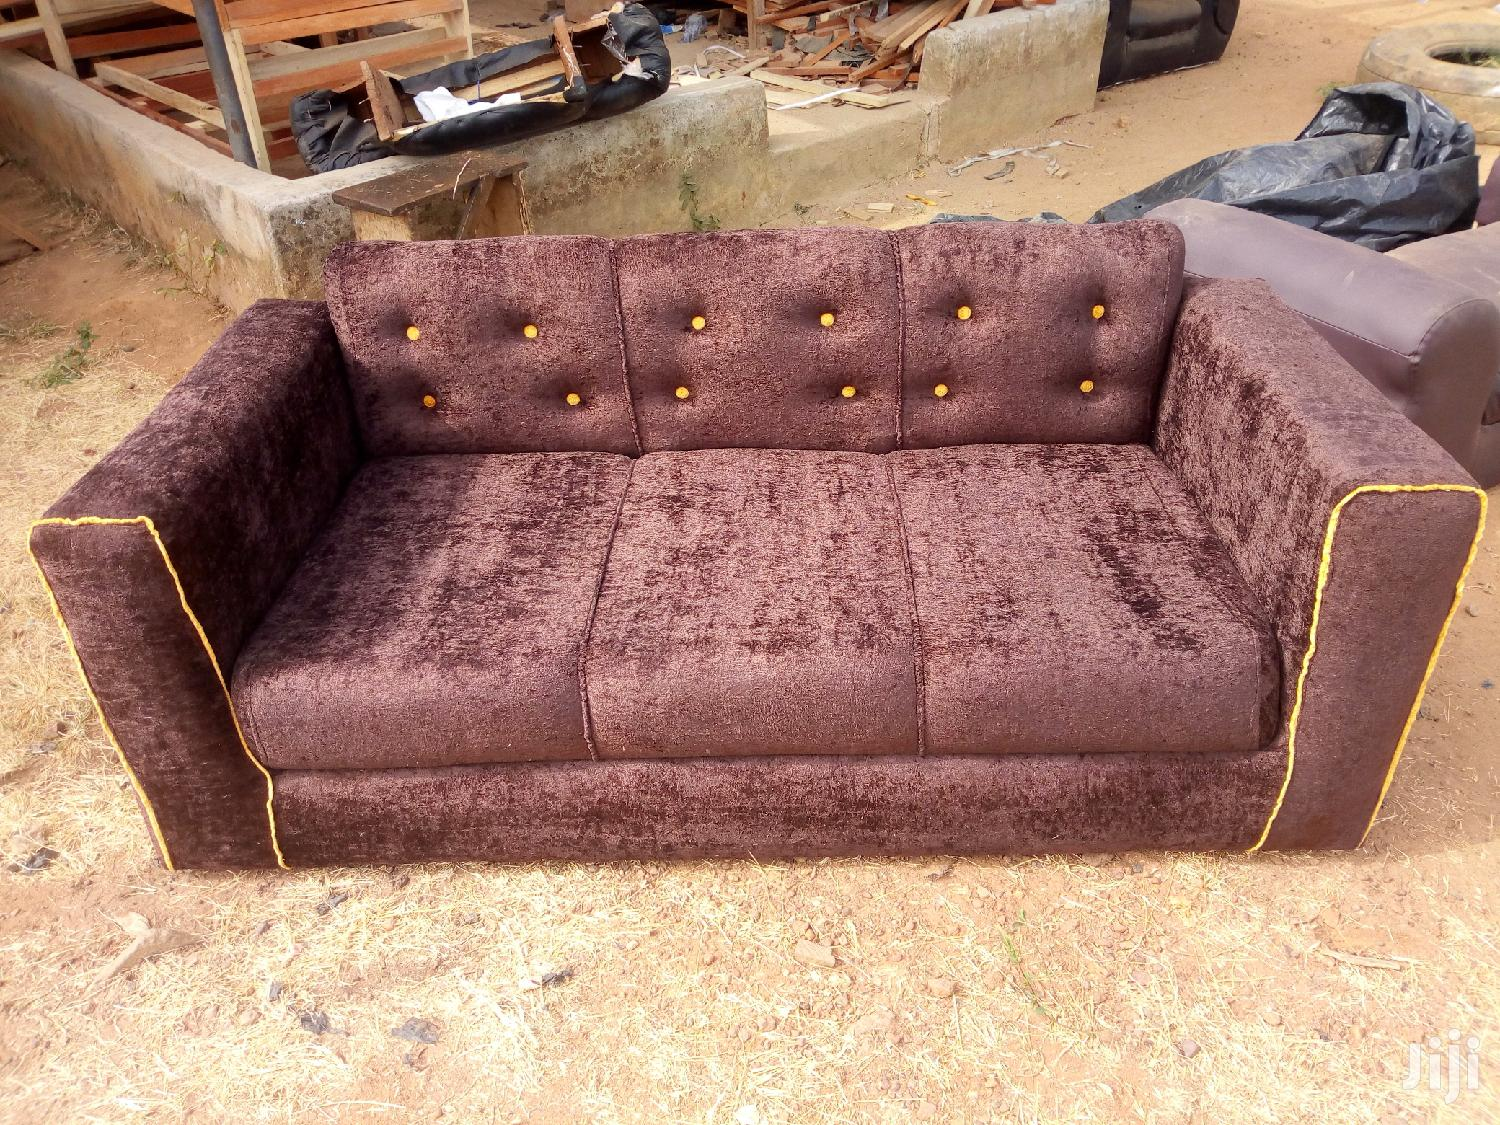 Archive: L.A Furniture Works. Home of Quality and Affordable Sofas